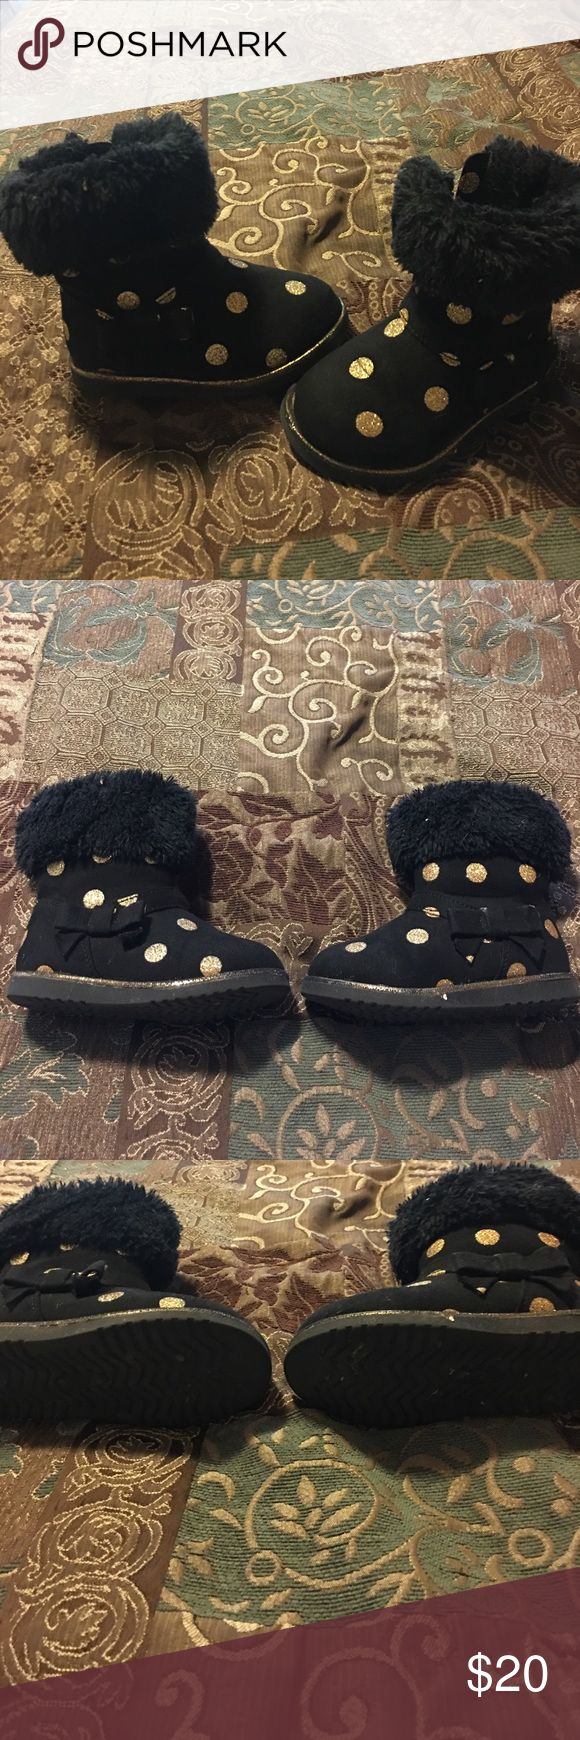 Seychelles boots 😍💝💗 These are black boots with gold dots on them 😊. I love these boots they are adorable with some leggings and in great shape ❤️💕💝. Size 8 toddler Seychelles Shoes Boots